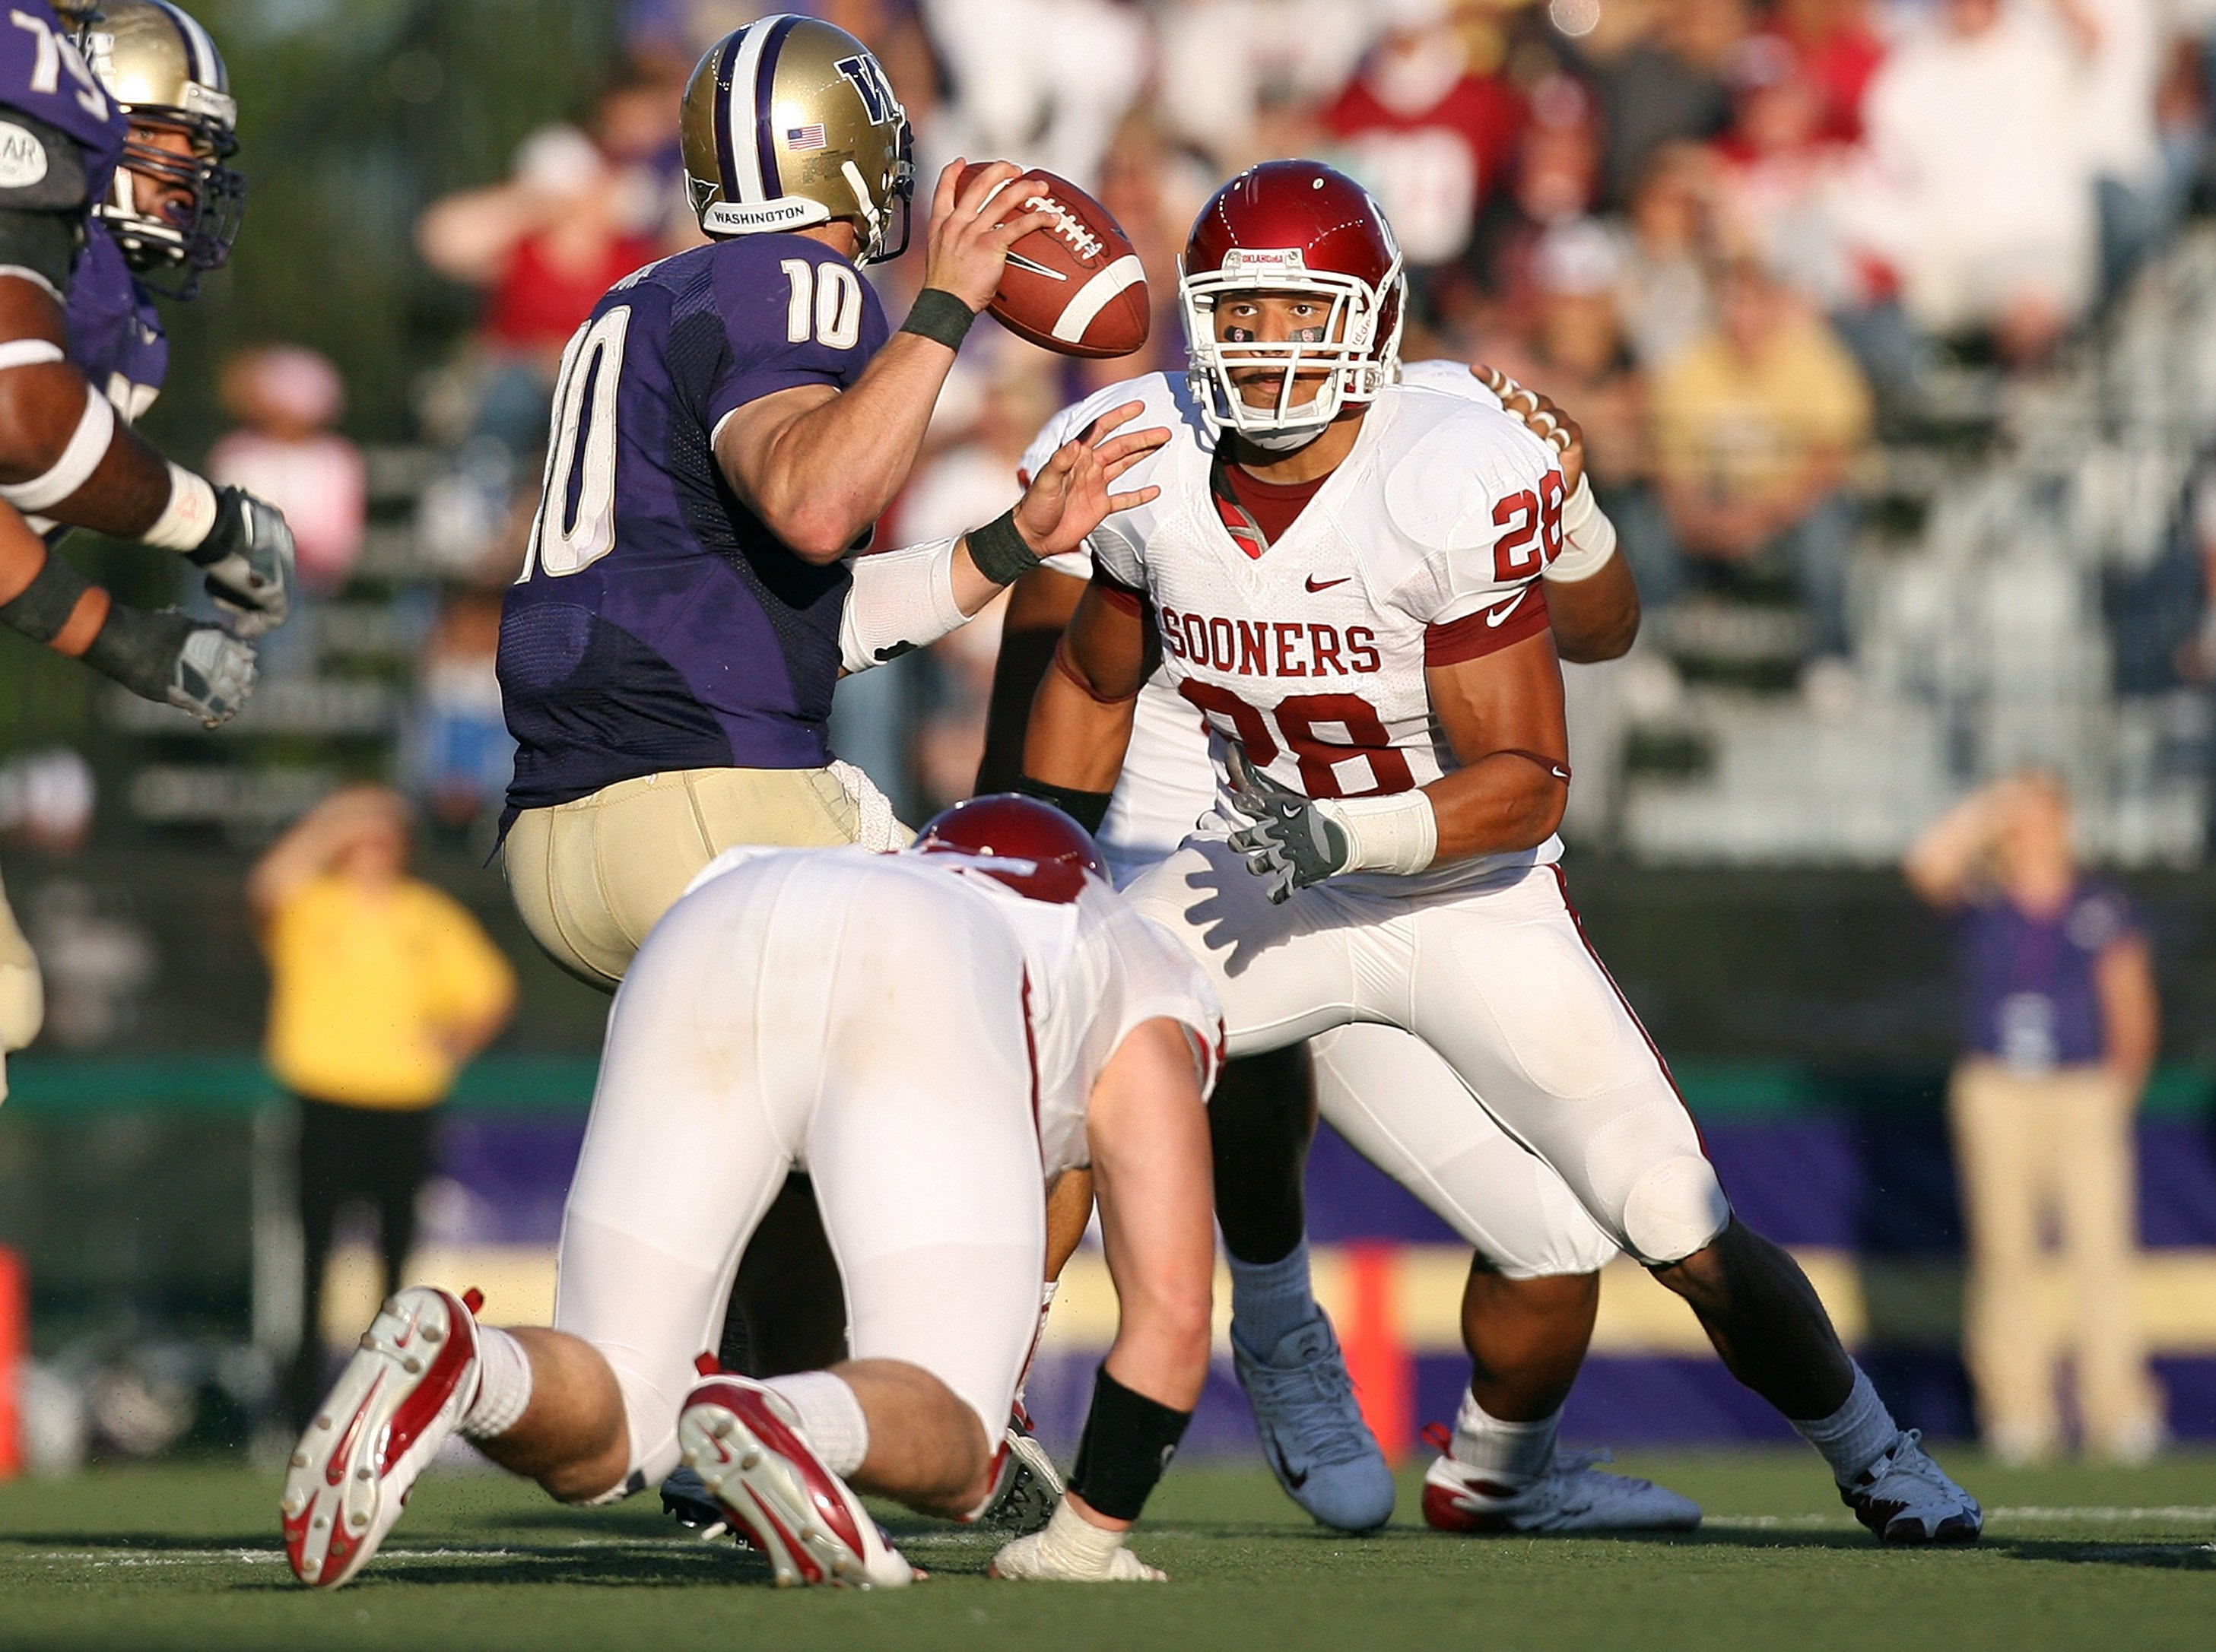 SEATTLE - SEPTEMBER 13:  Travis Lewis #28 of the Oklahoma Sooners defends the pass play during the game against the Washington Huskies on September 13, 2008 at Husky Stadium in Seattle, Washington. The Sooners defeated the Huskies 55-14.(Photo by Otto Gre